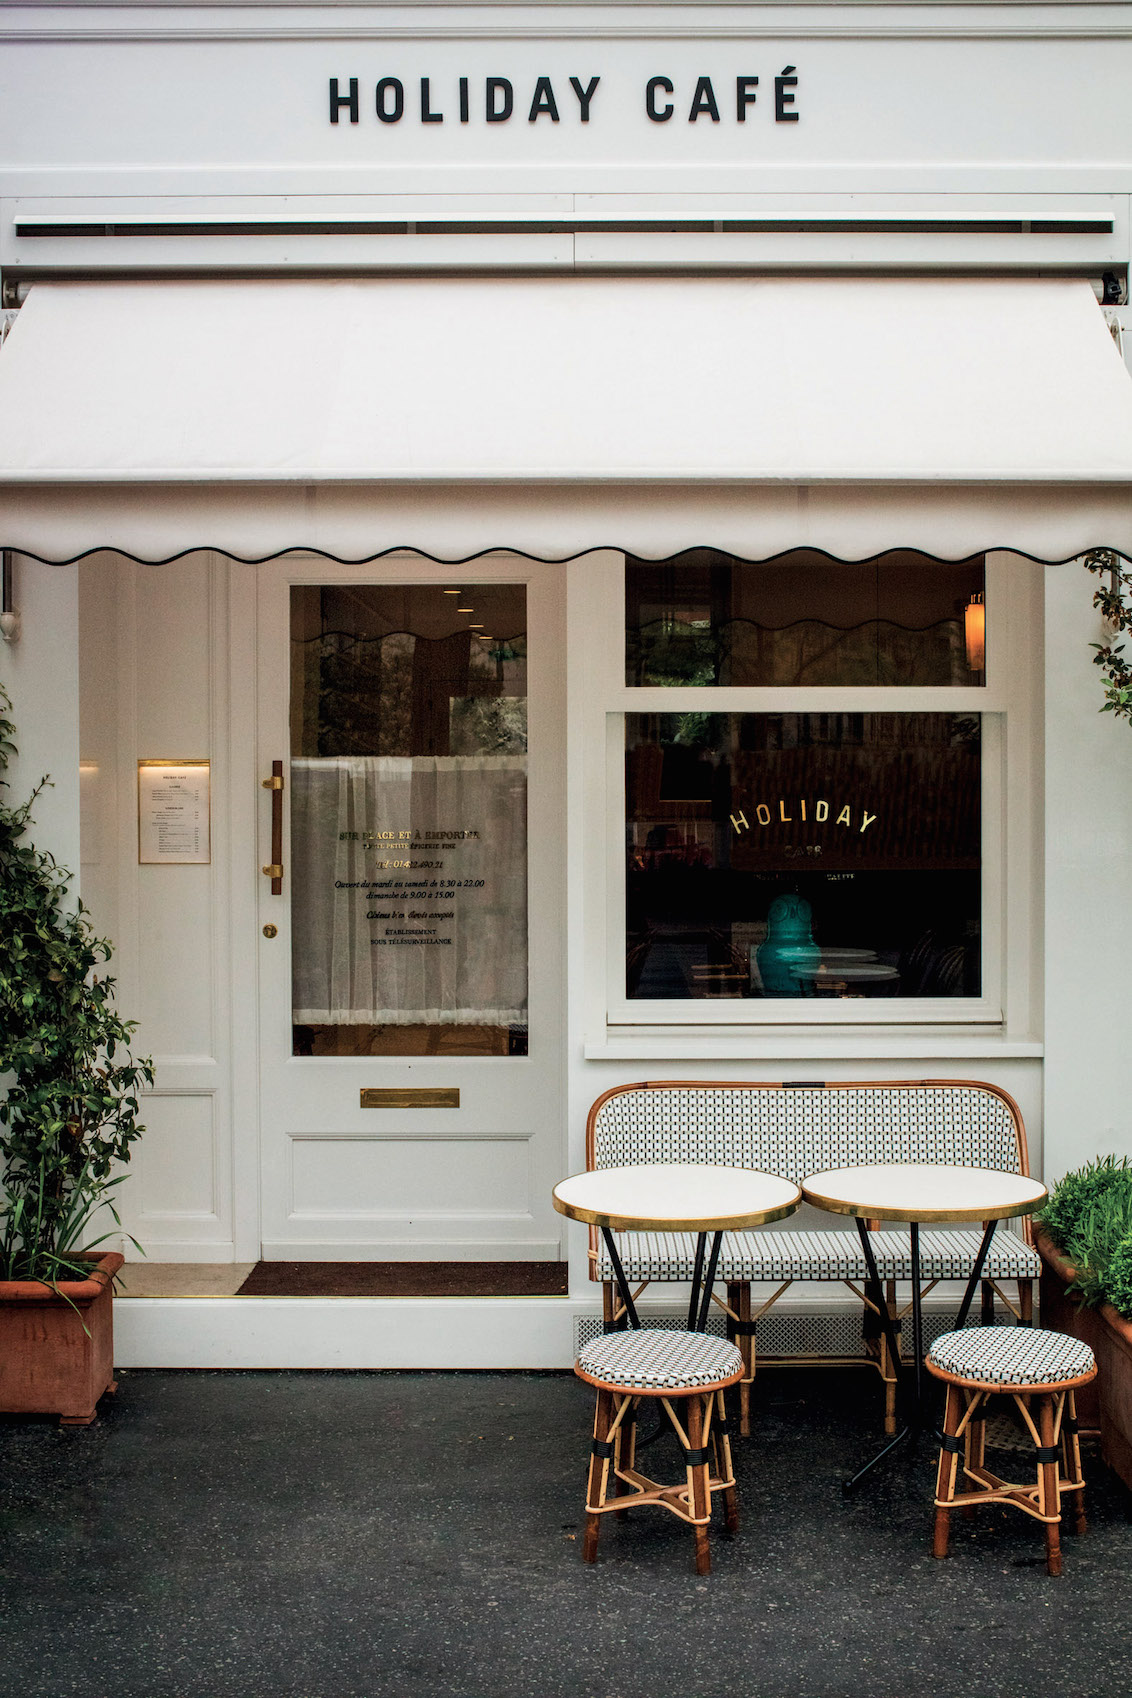 10 Storefronts With Showstopper Awnings - Design*Sponge